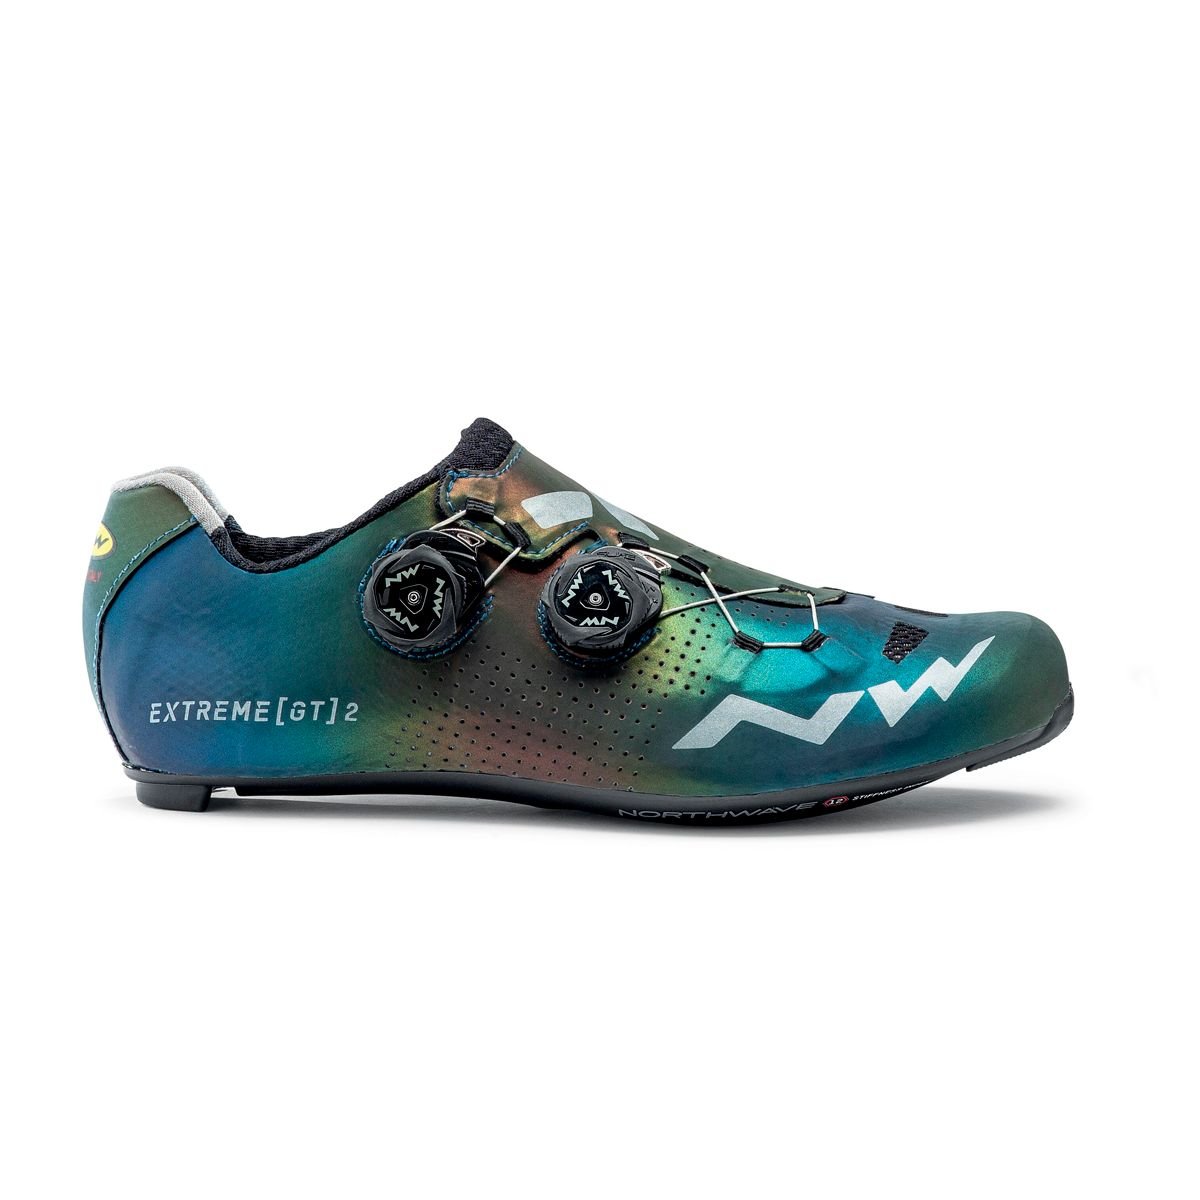 NORTHWAVE EXTREME GT 2 Road Shoes | Shoes and overlays